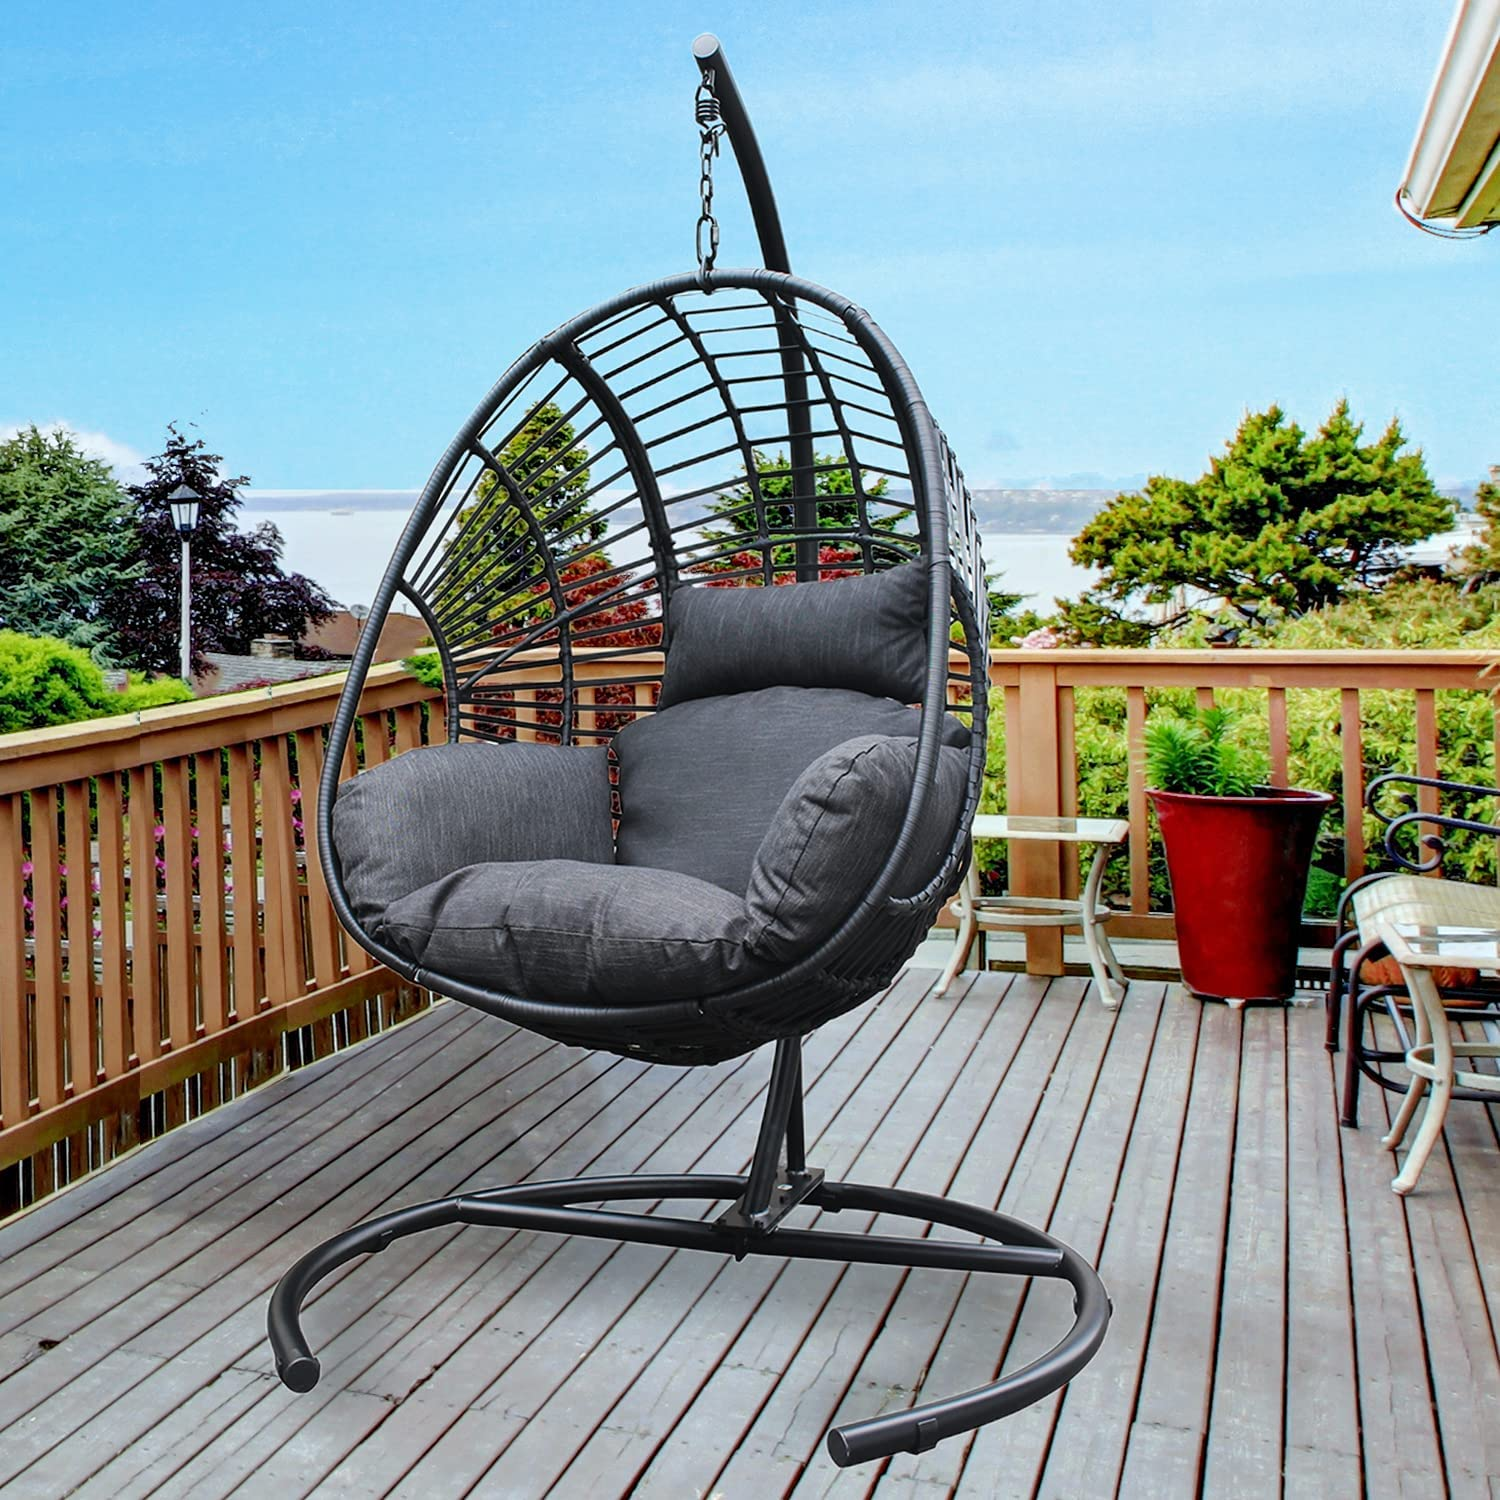 JOYBASE Hanging Egg Chair Ranking TOP2 with Outdoor Rattan Stand Wicker Daily bargain sale